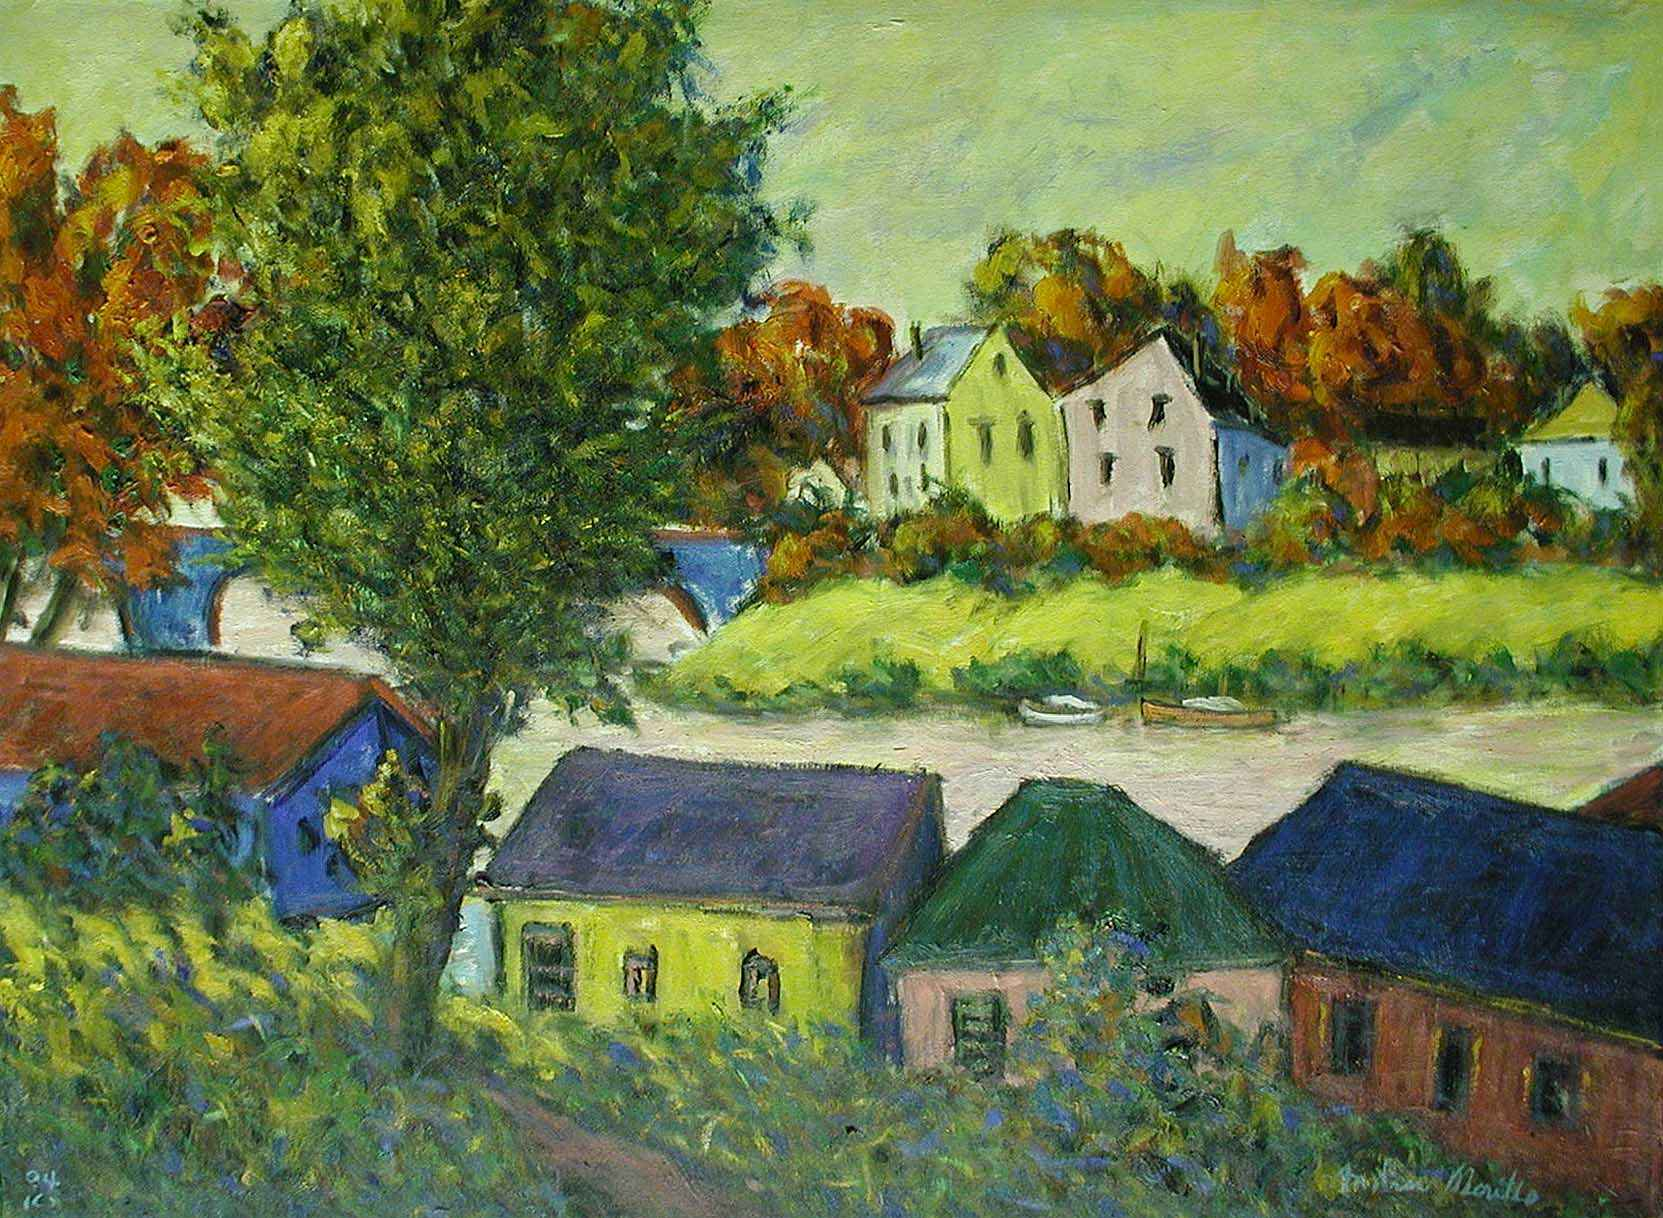 Path by the River Bank by  Andres  Morillo - Masterpiece Online